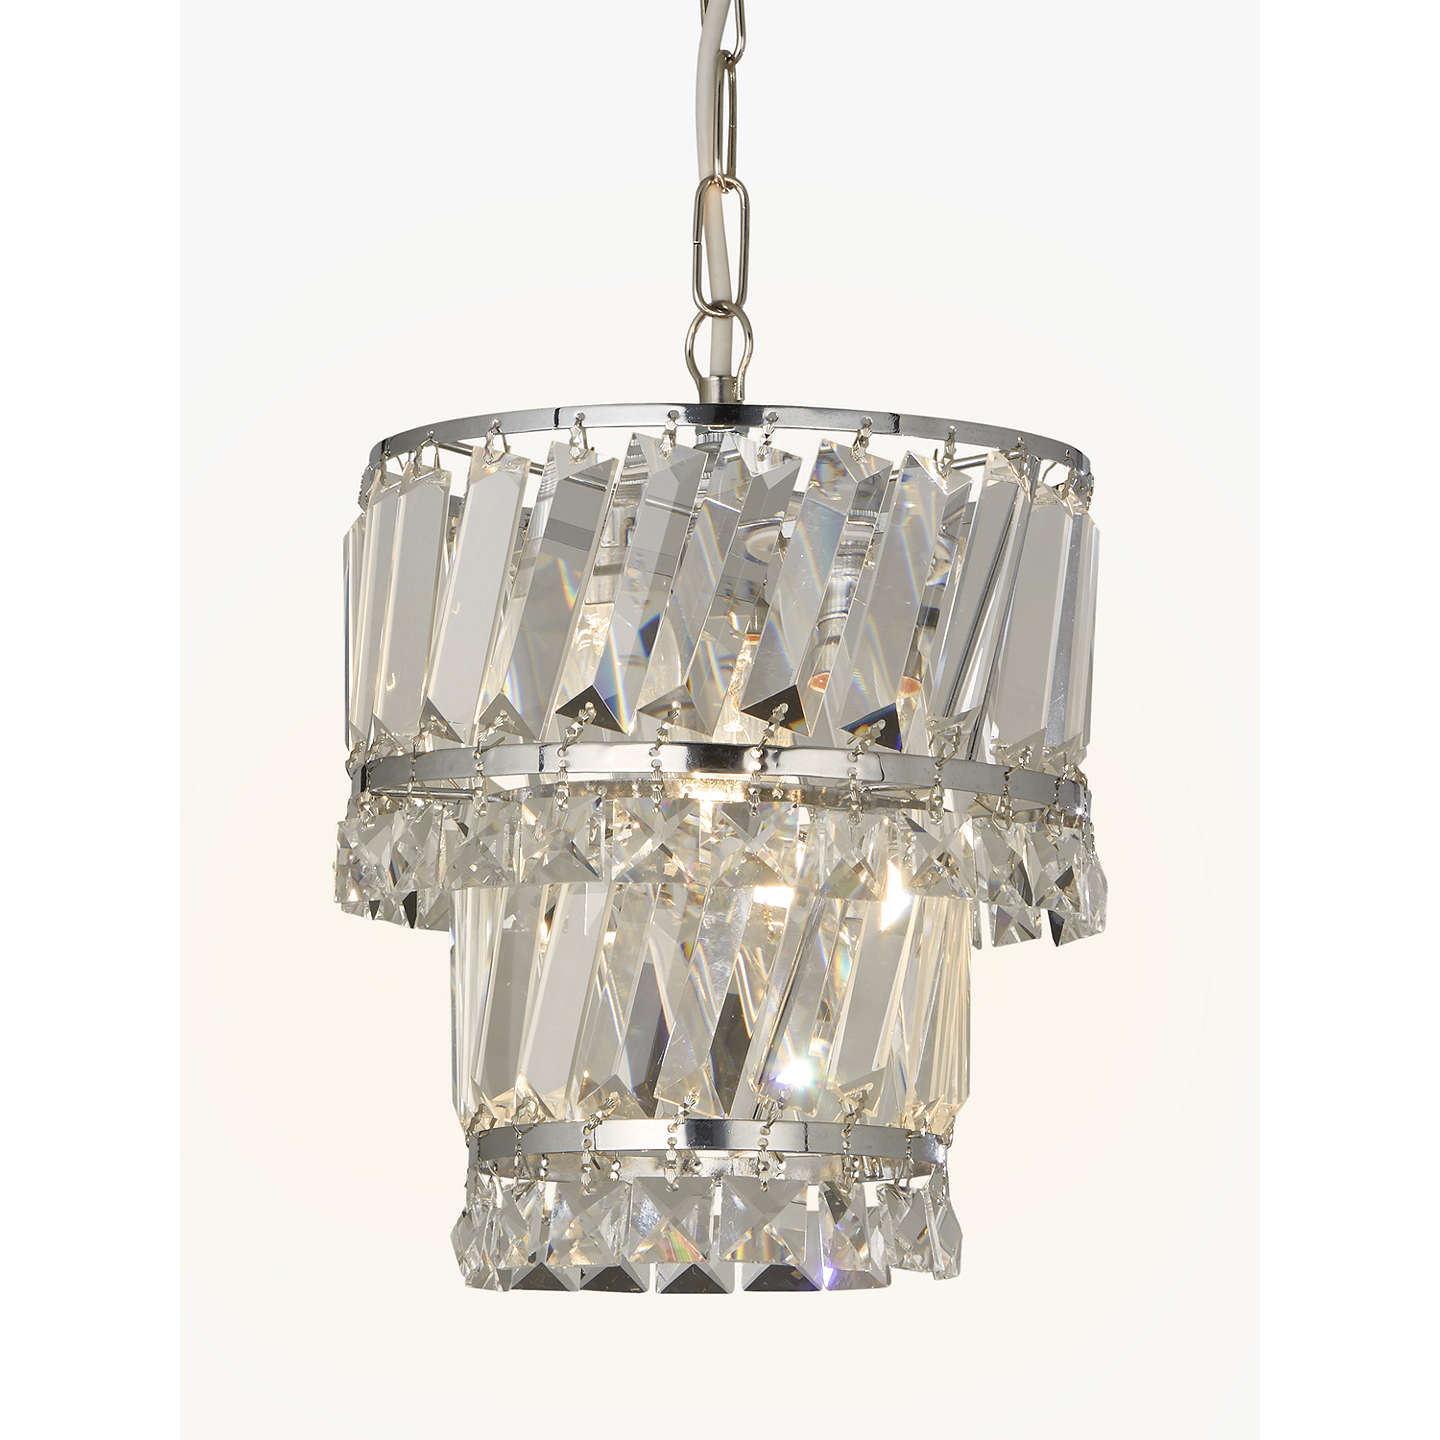 John Lewis Celeste Easy To Fit Pendant Ceiling Light Crystal Clear